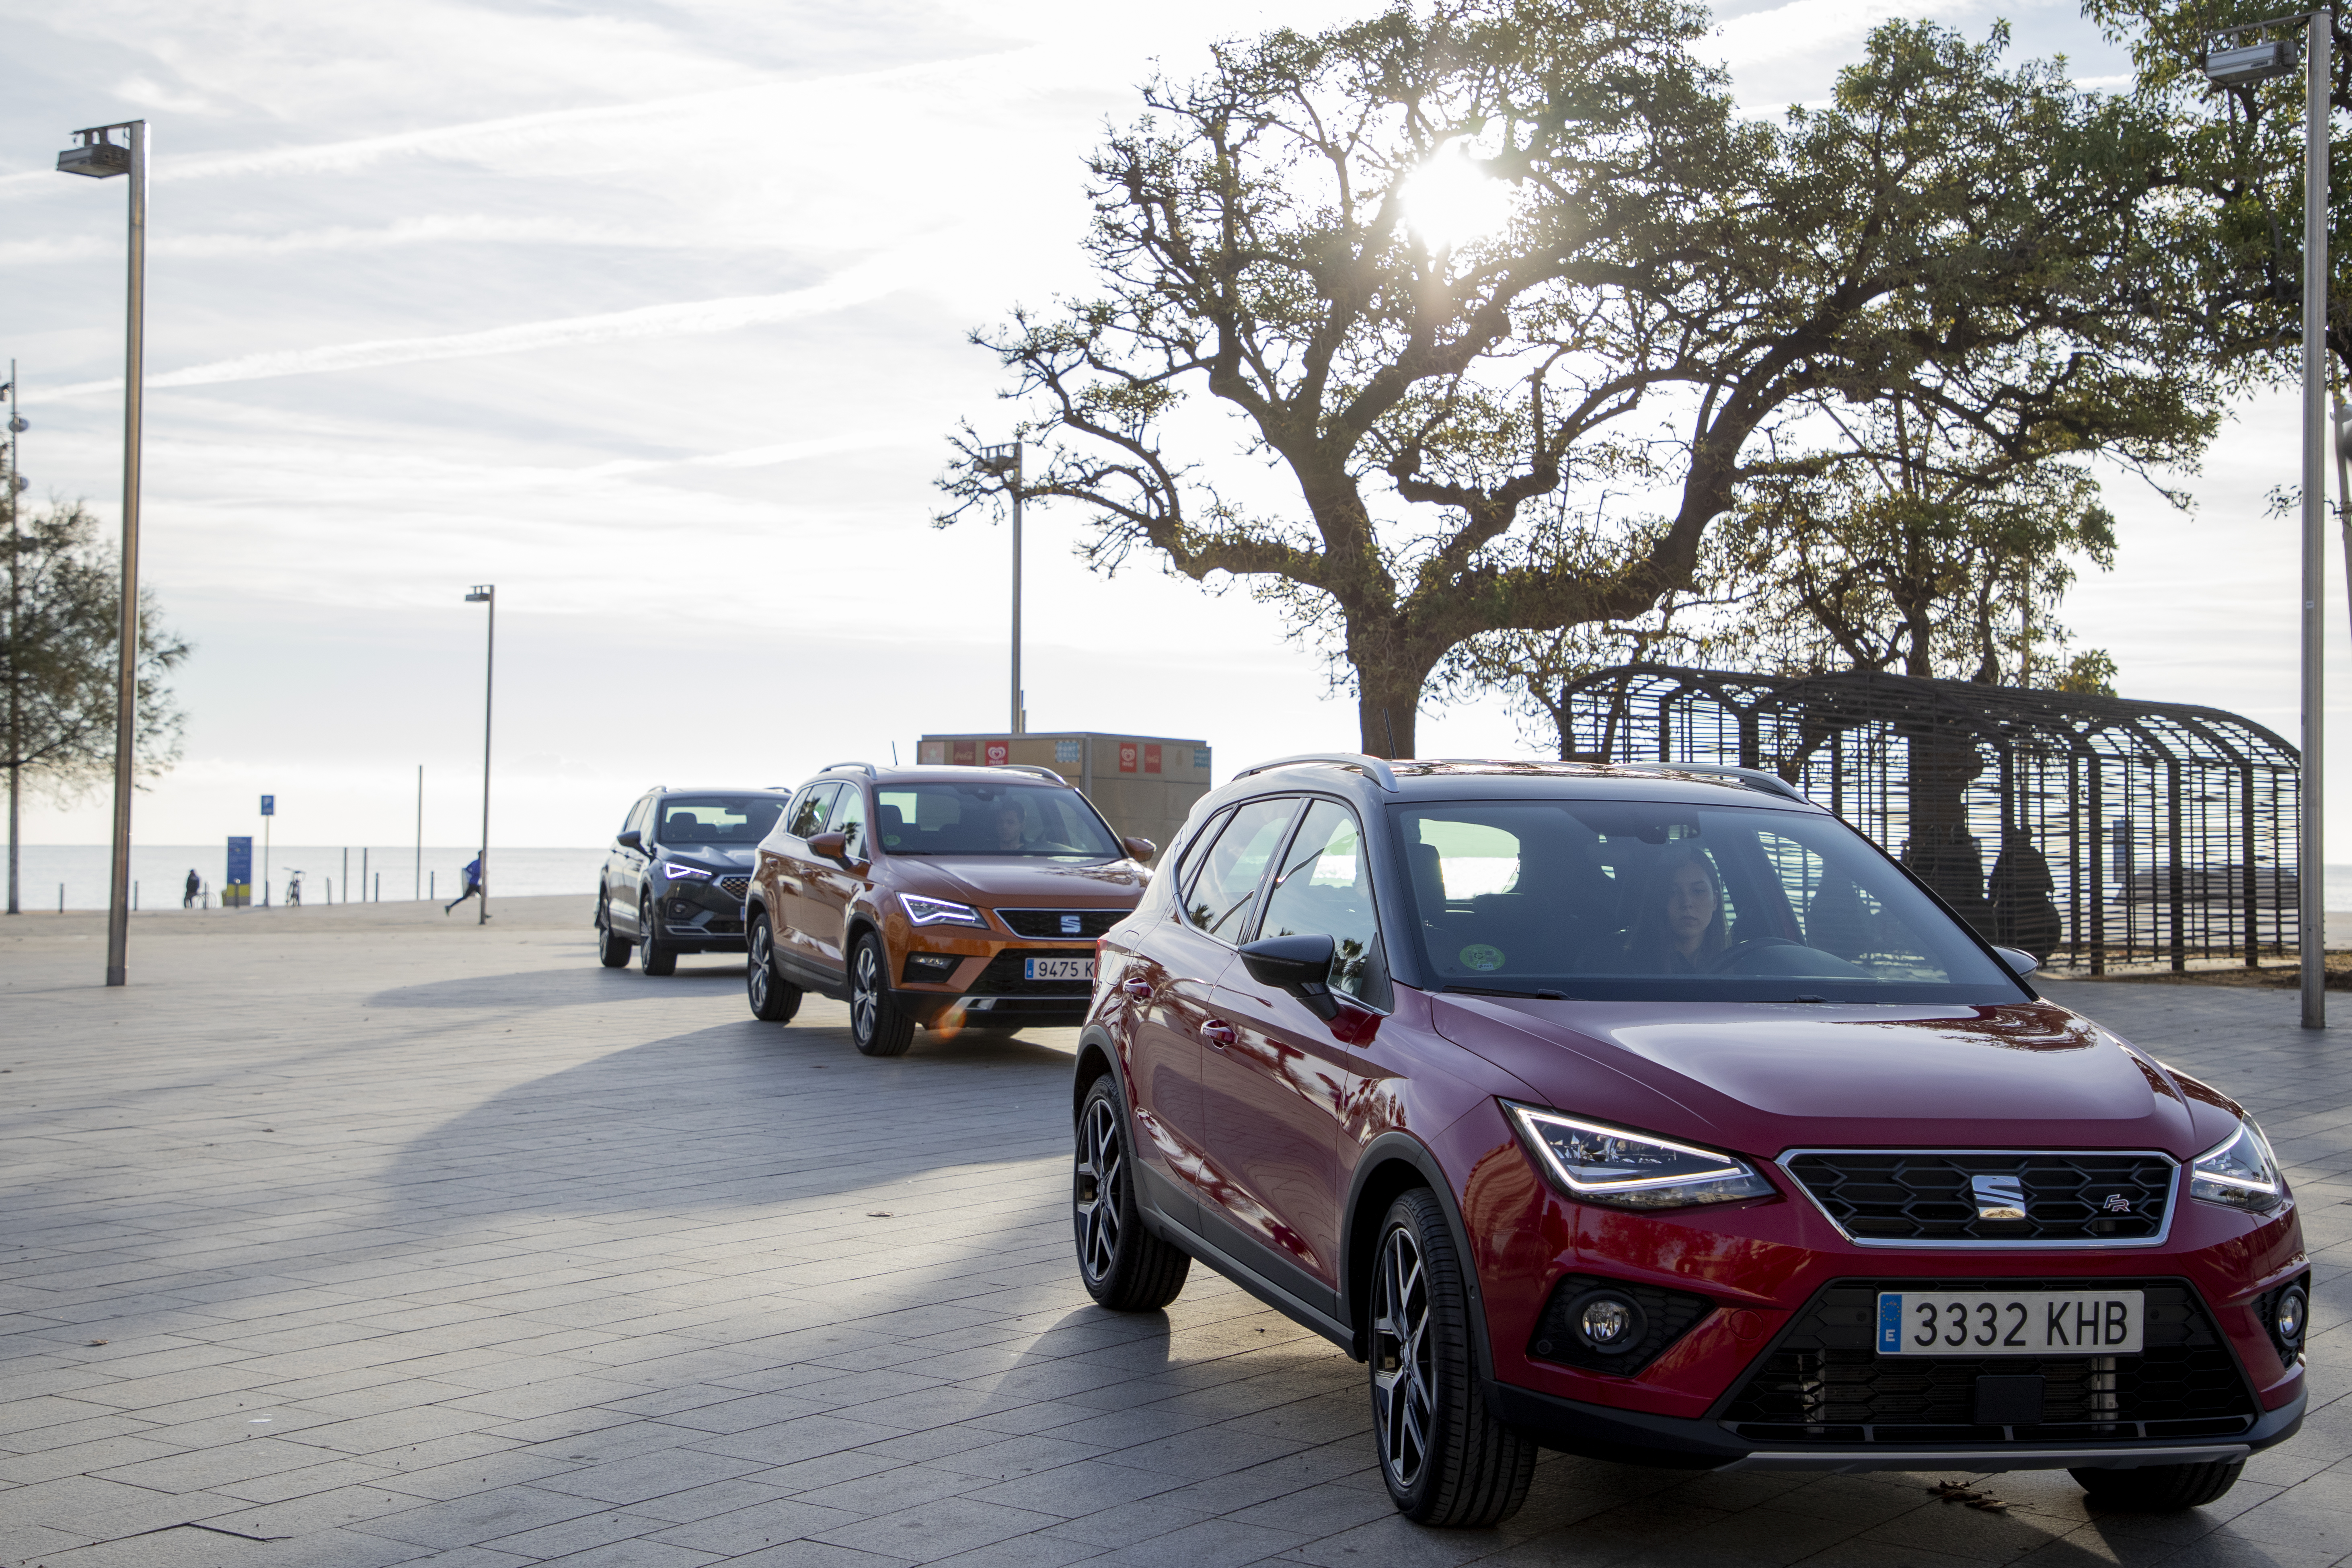 SEATs-three-SUVs-on-the-road-together-for-the-first-time_003_HQ